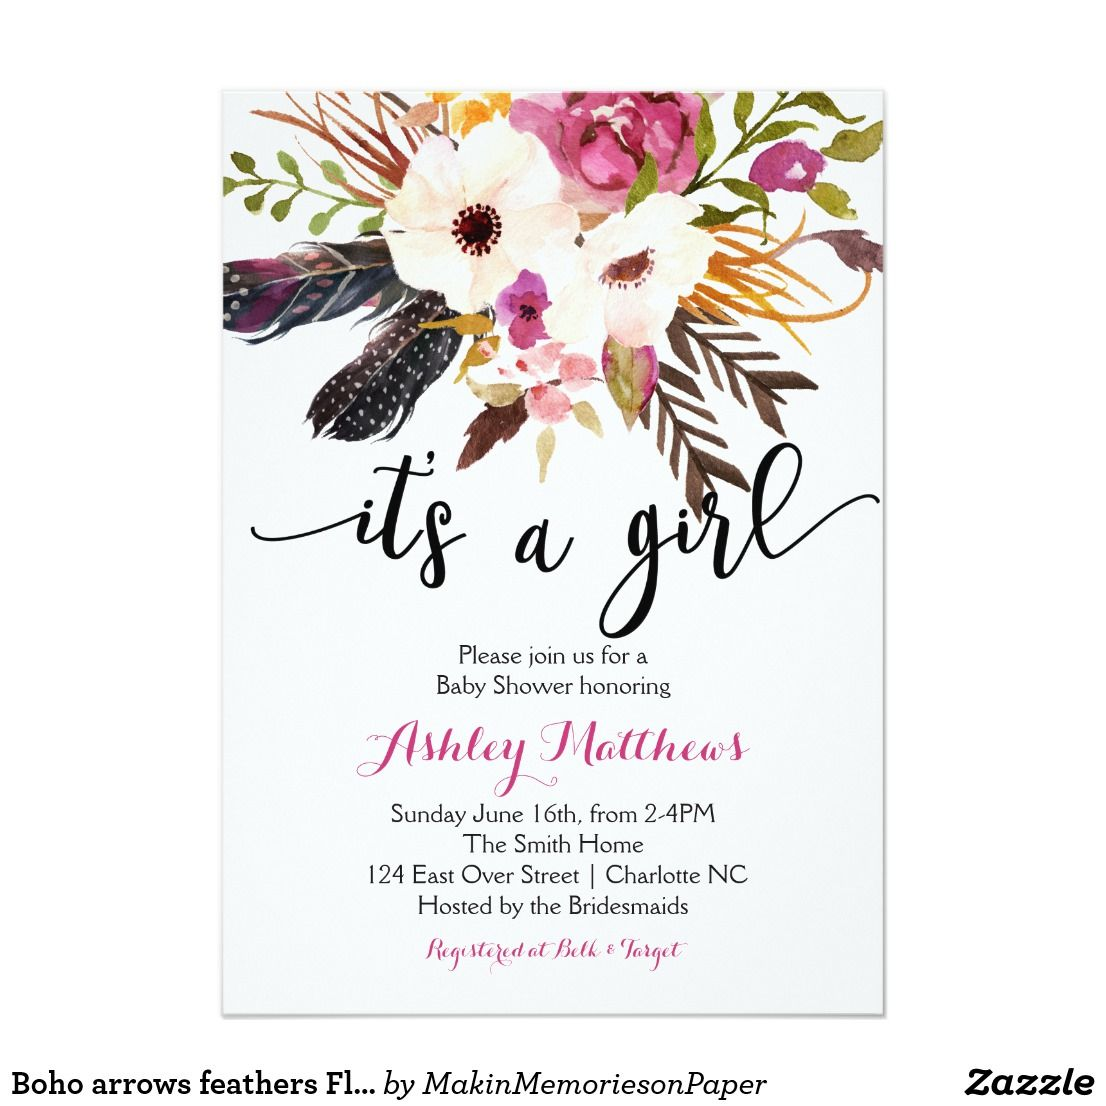 Boho Arrows Feathers Floral Baby Shower Invitation Watercolor